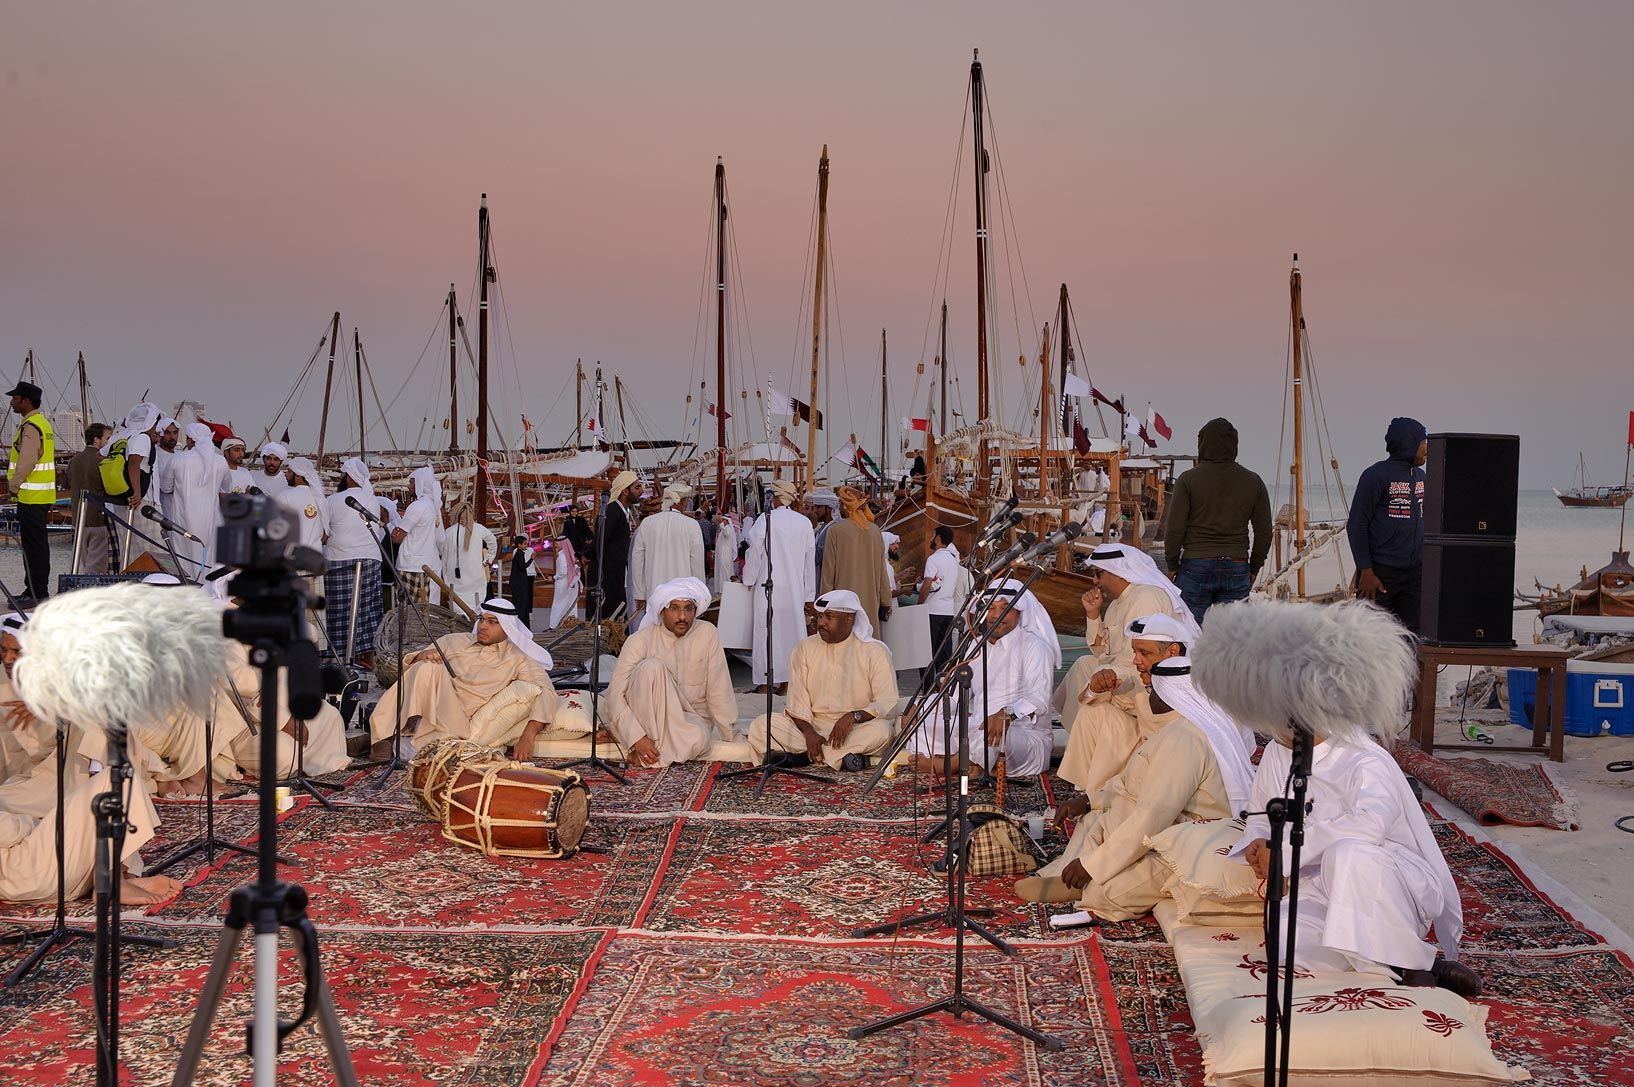 Gathering in Traditional Dhow Festival in Katara Cultural Village. Doha, Qatar